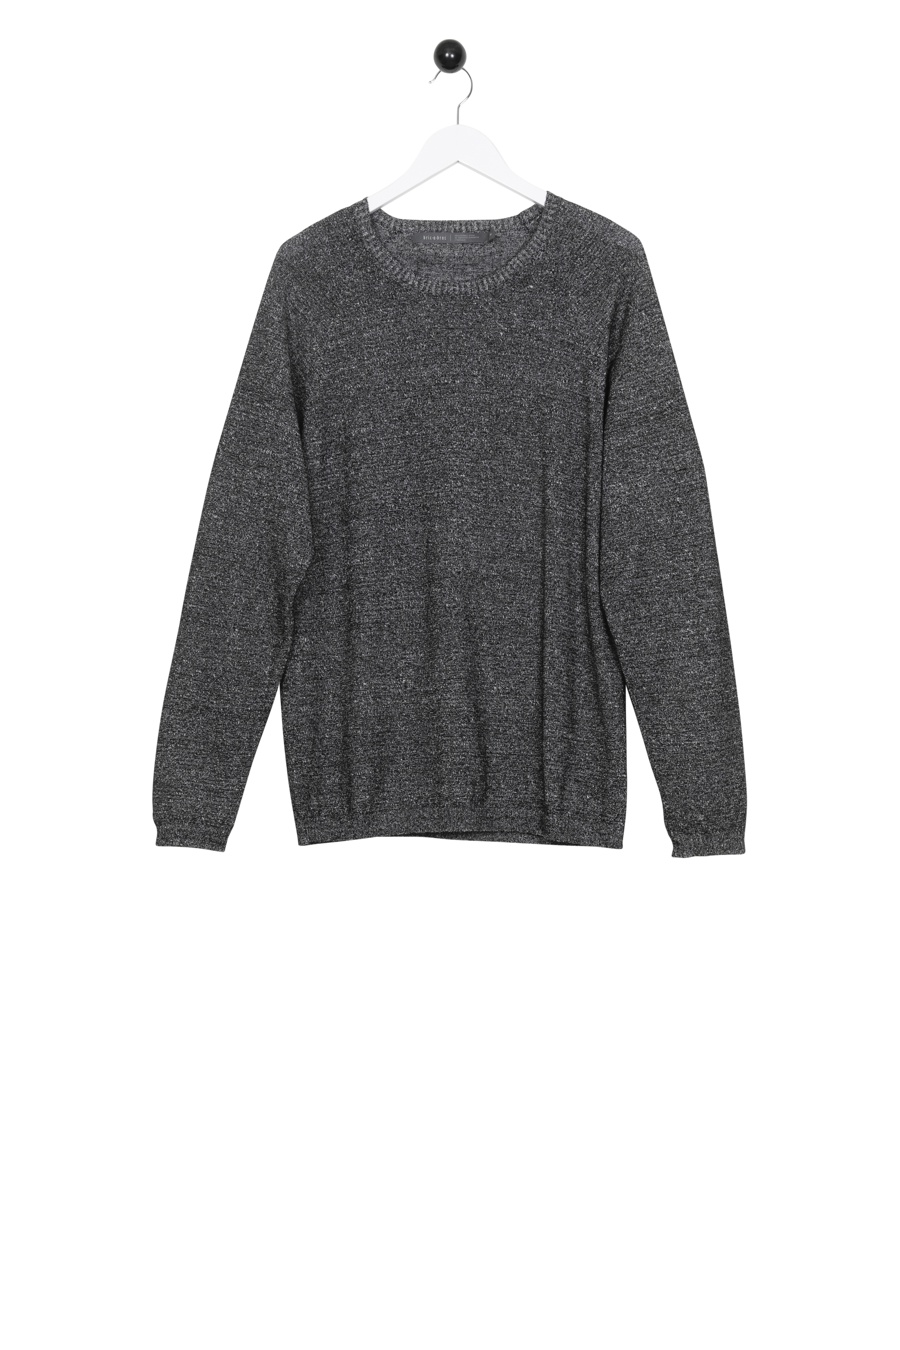 Sète Sweater